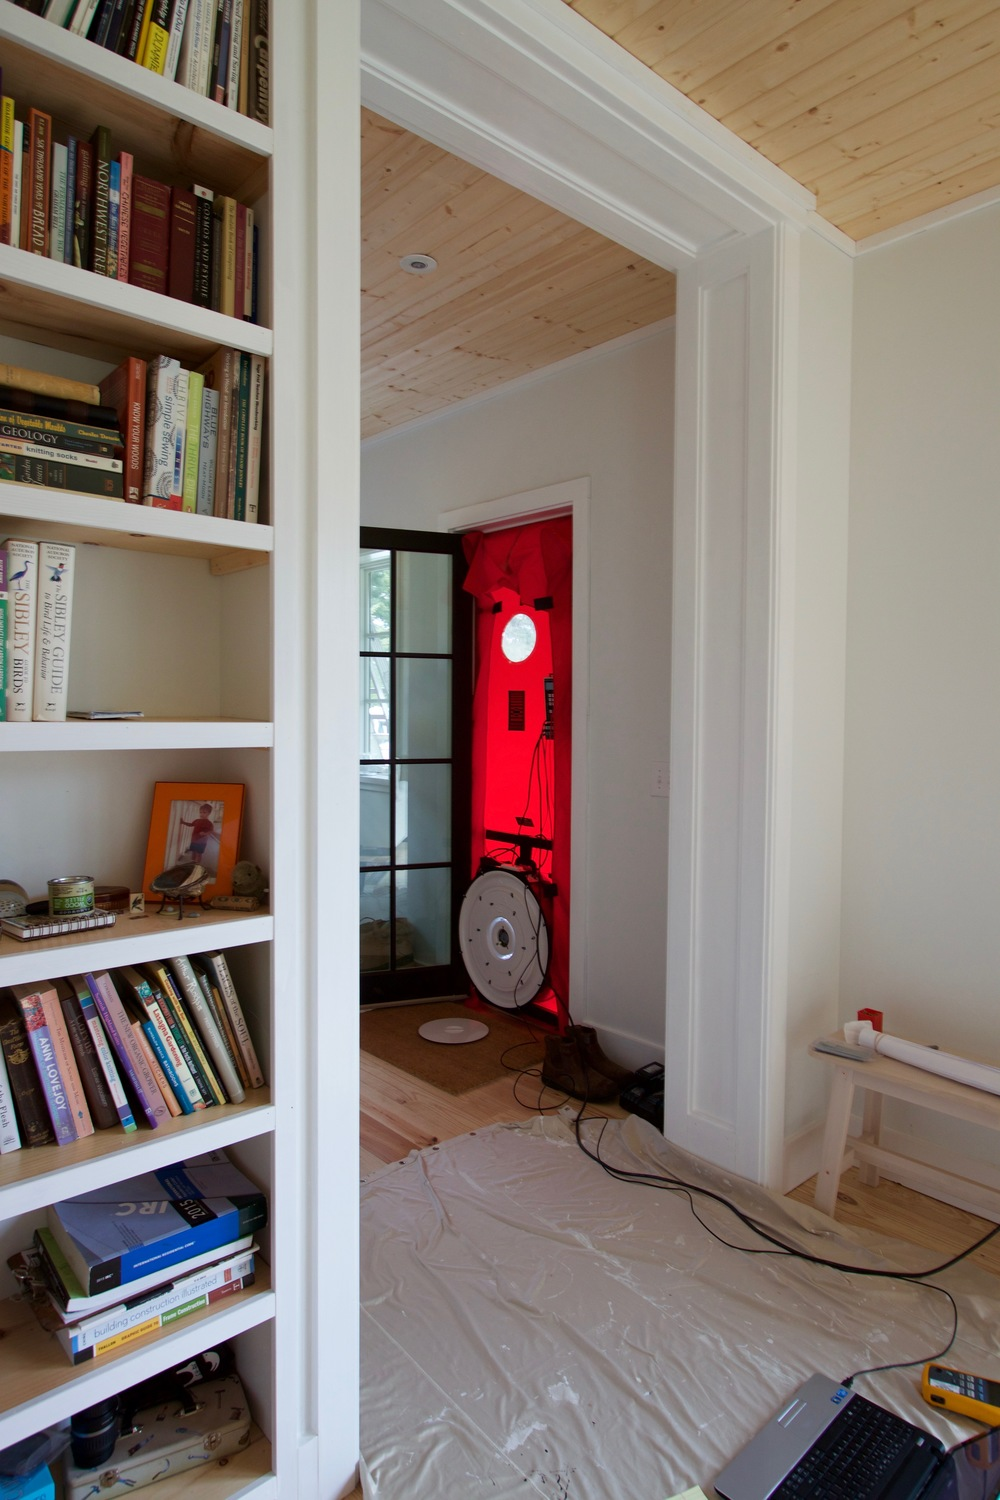 Blower door test results: ACH50 1.13